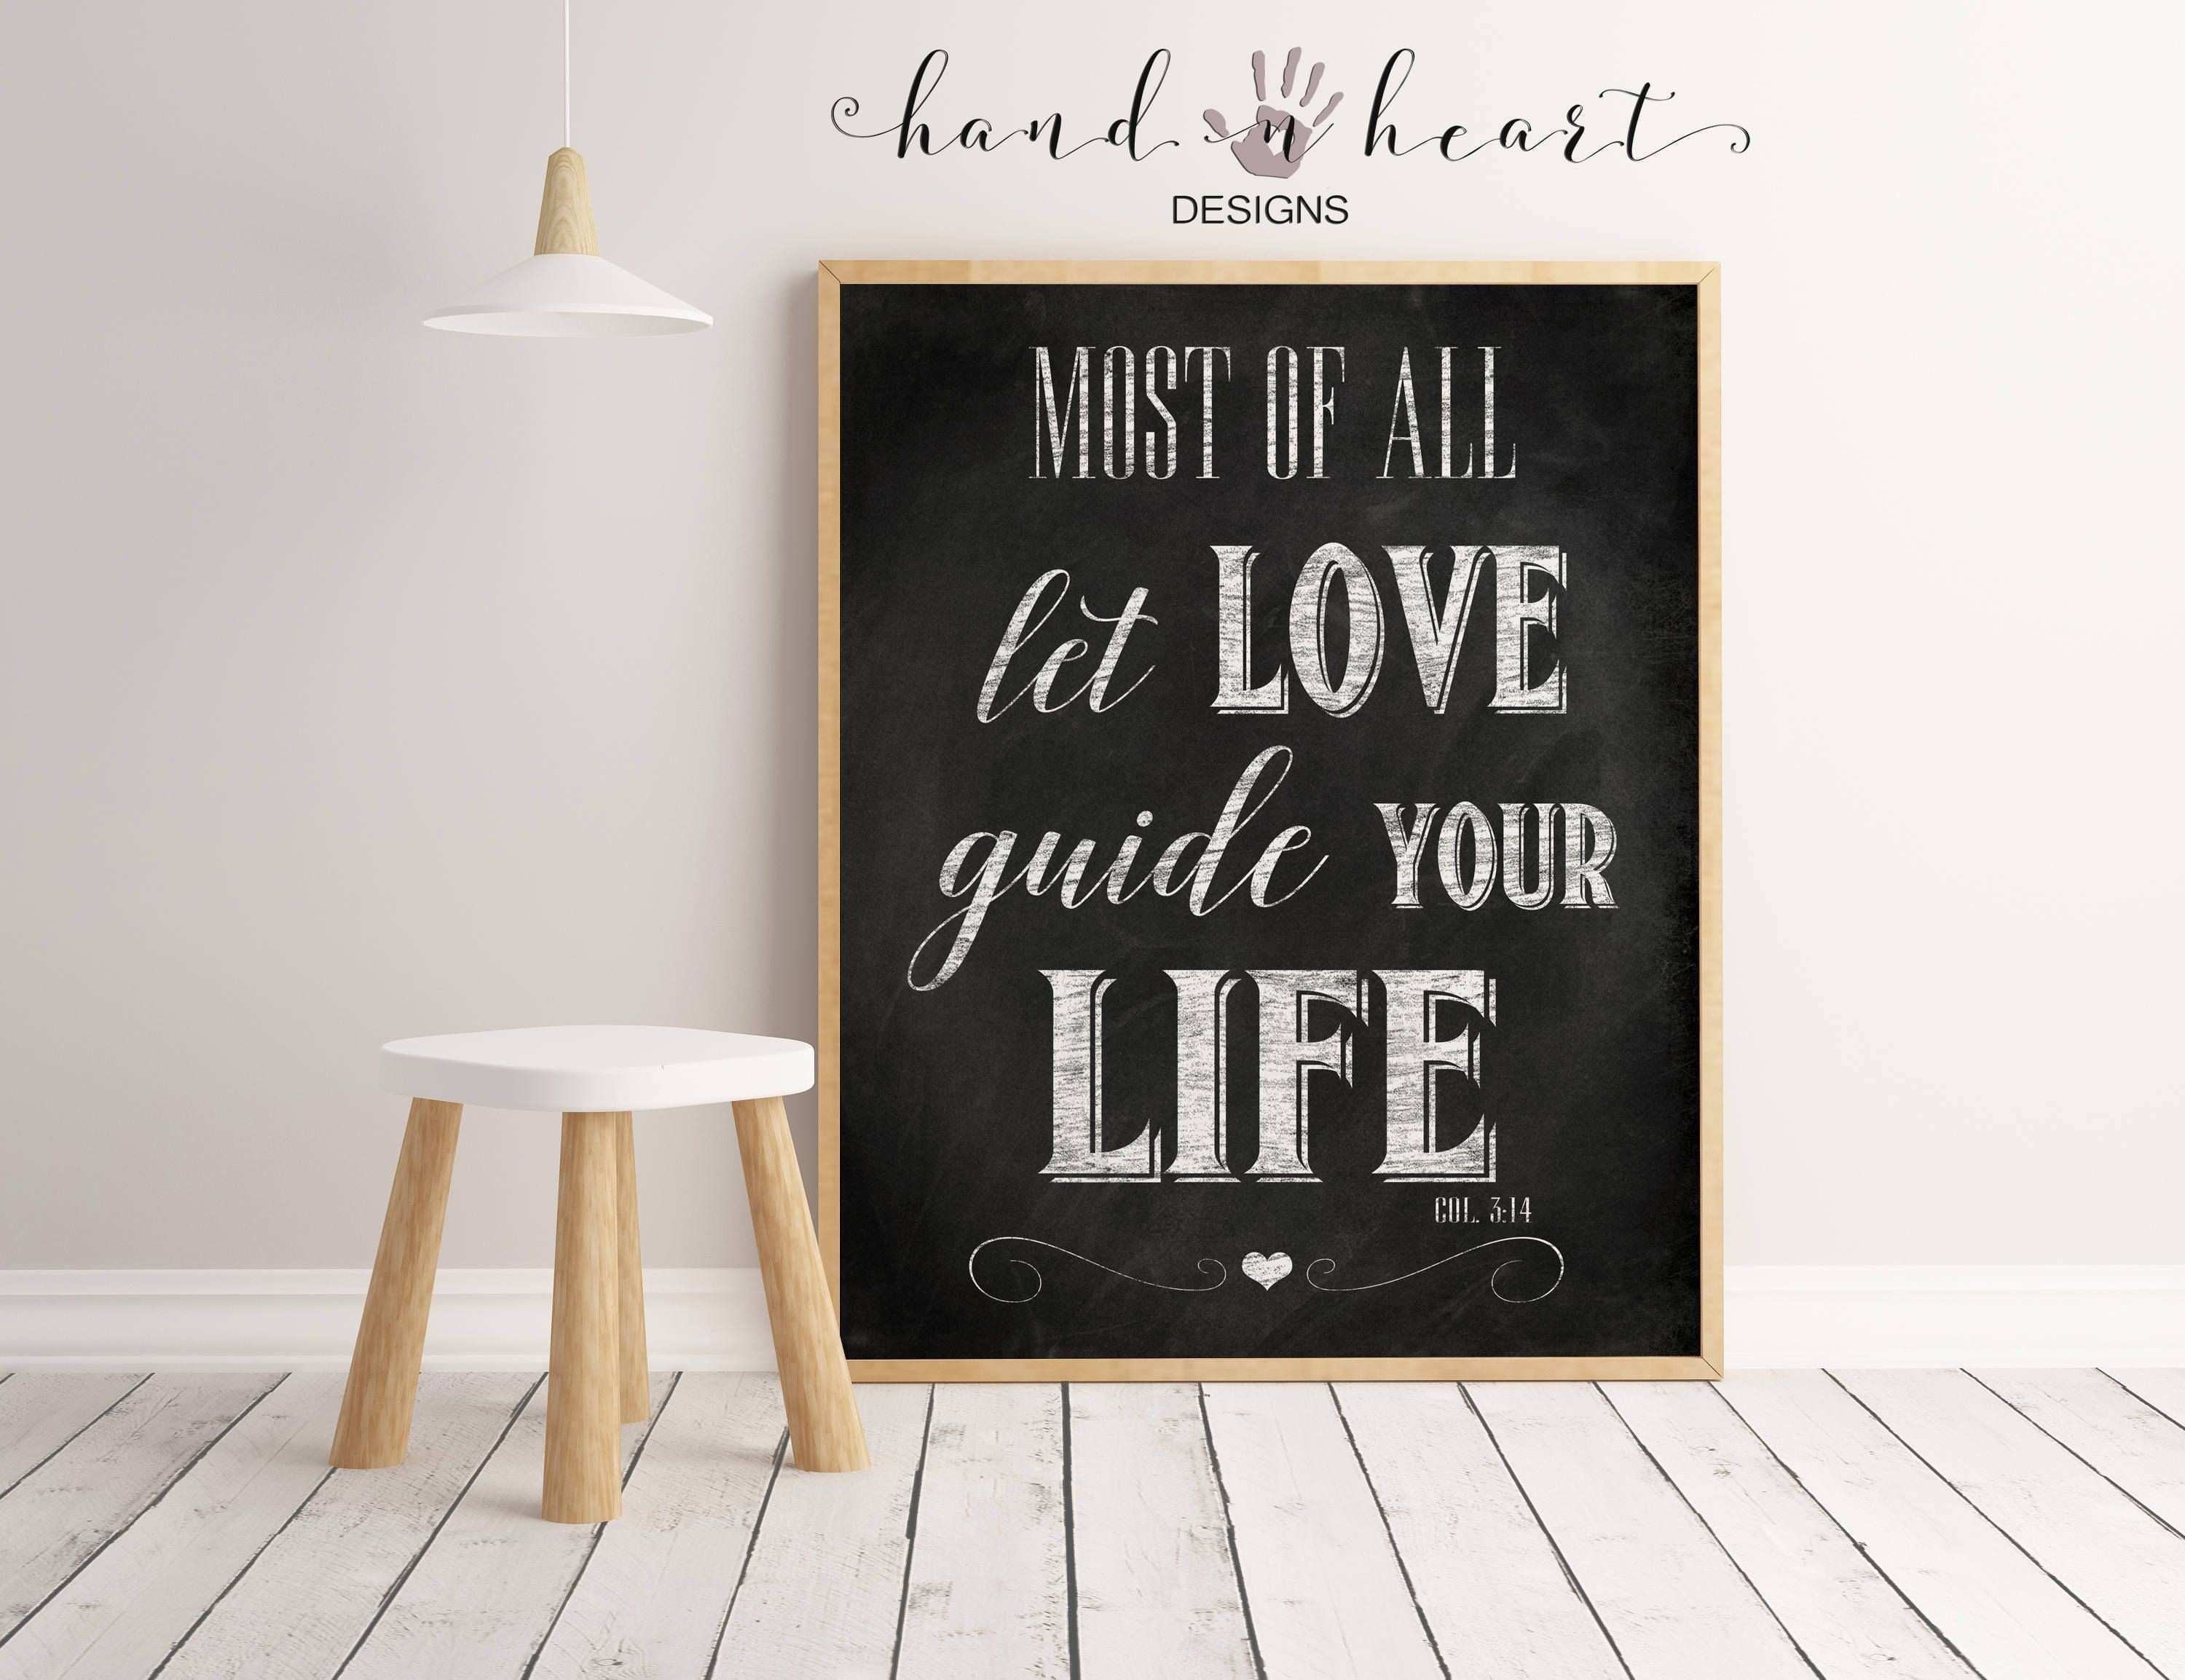 Most of all let love guide your life printable scripture farmhouse